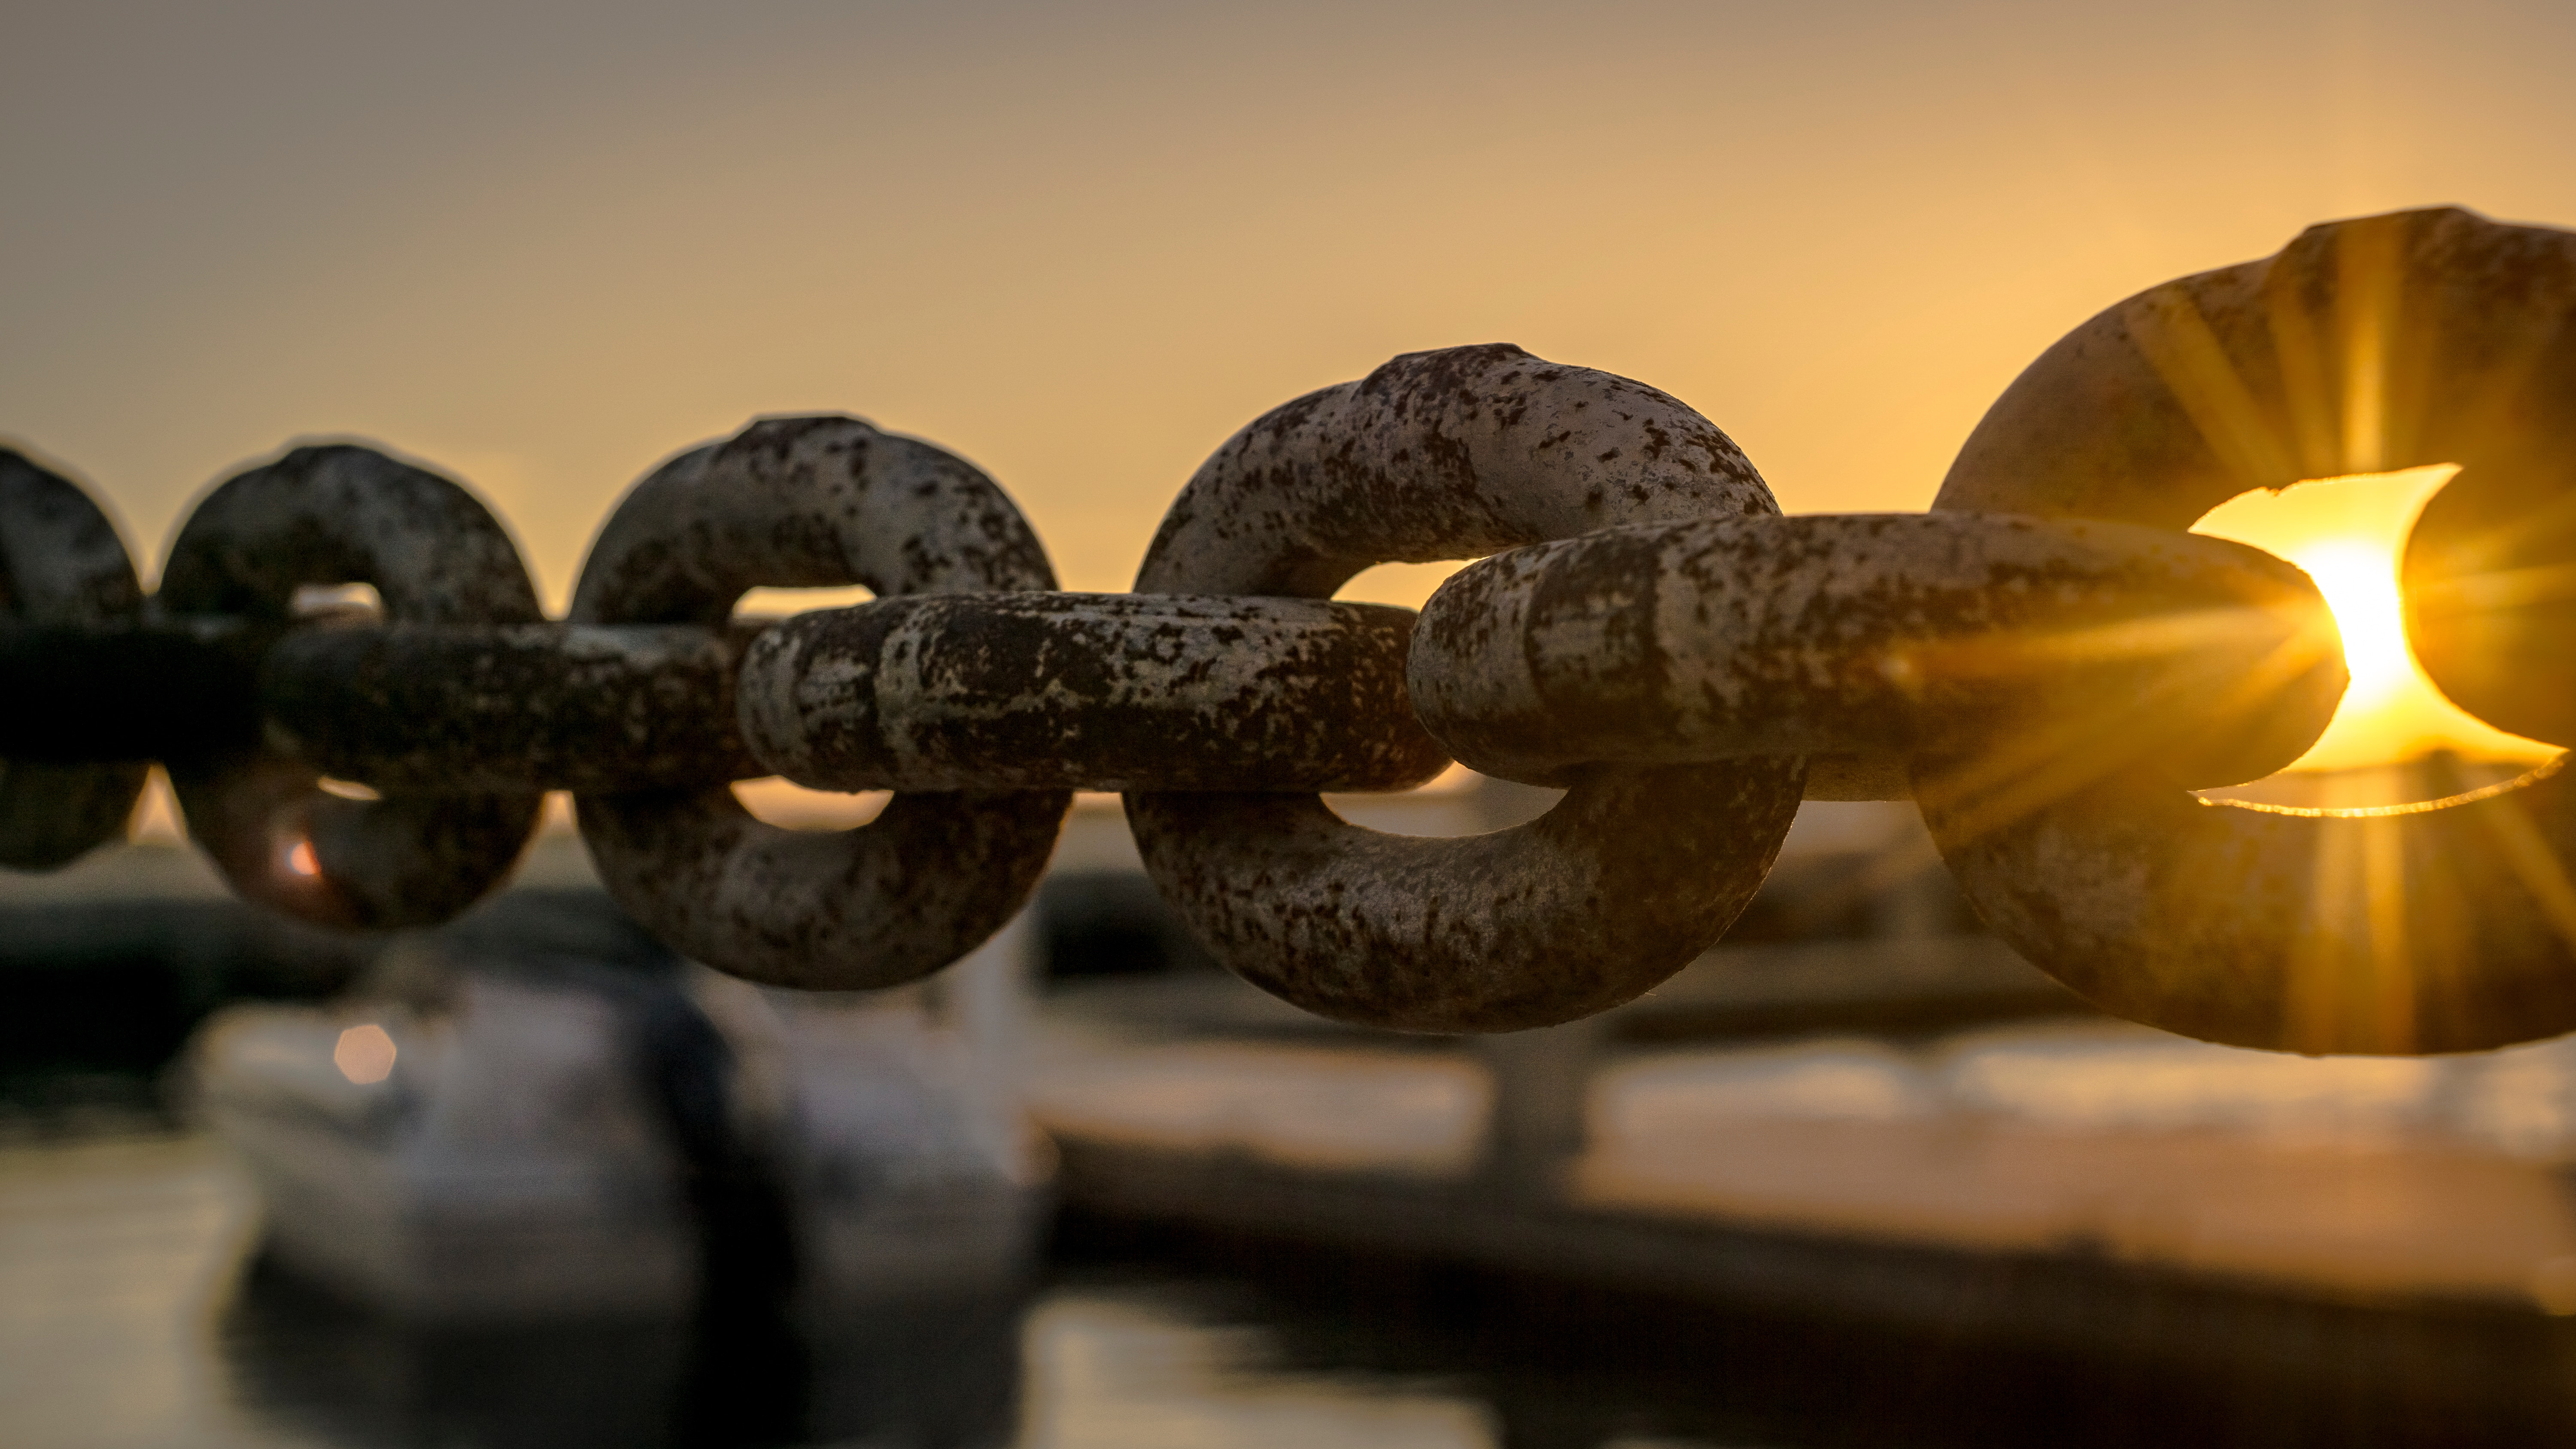 Make Link Building Easier With These 5 Tools